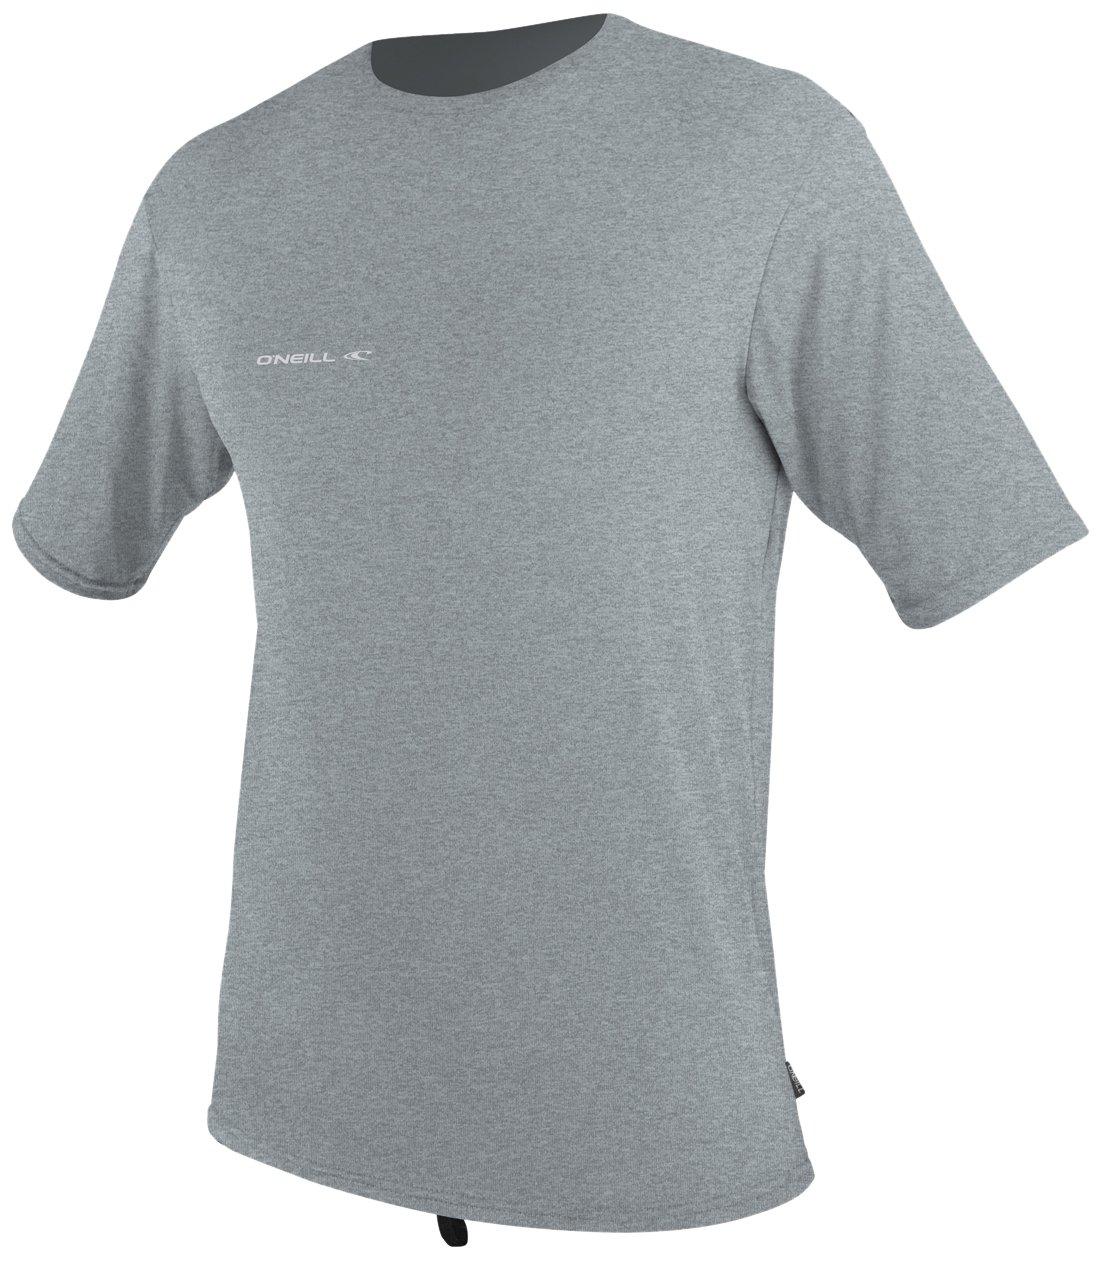 O'Neill Wetsuits  Men's Hybrid UPF 50+ Short Sleeve Sun Shirt,CoolGrey,Medium by O'Neill Wetsuits